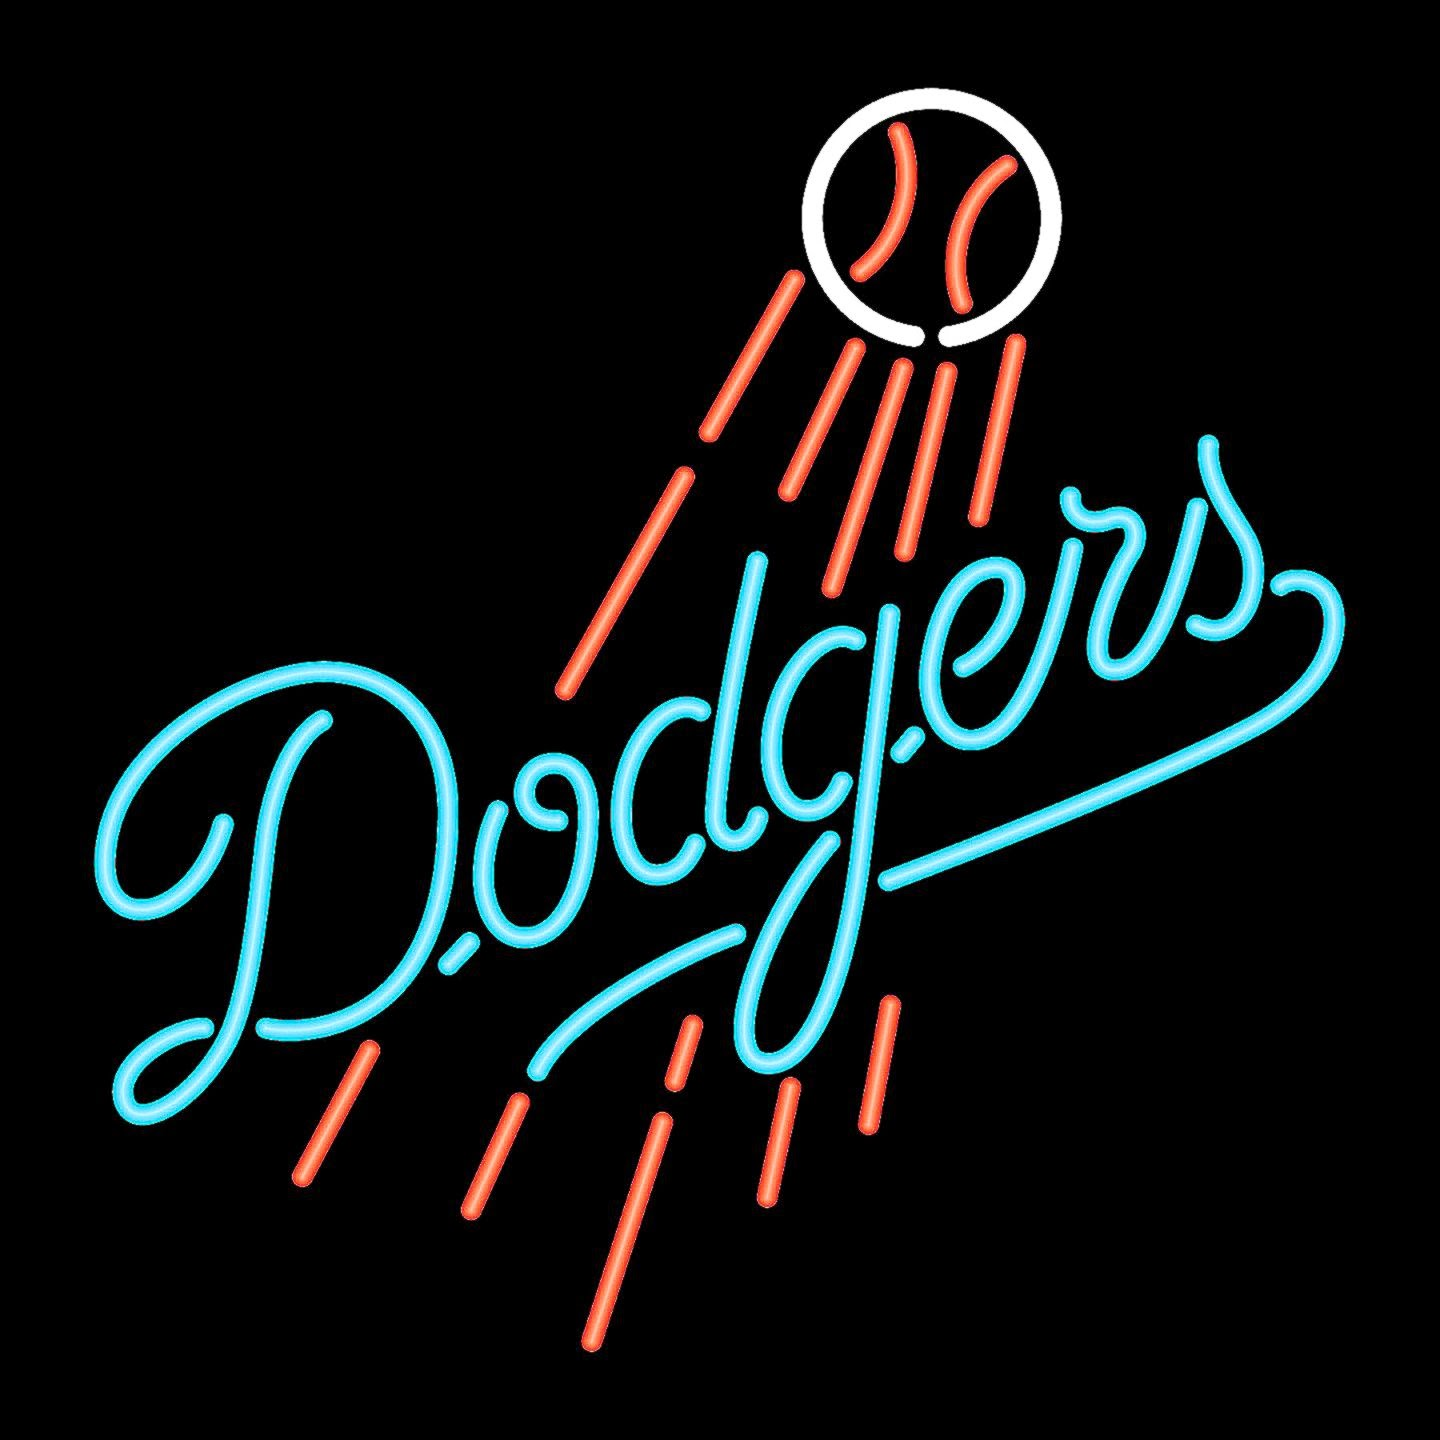 Los Angeles Dodgers Wallpapers  Wallpapers